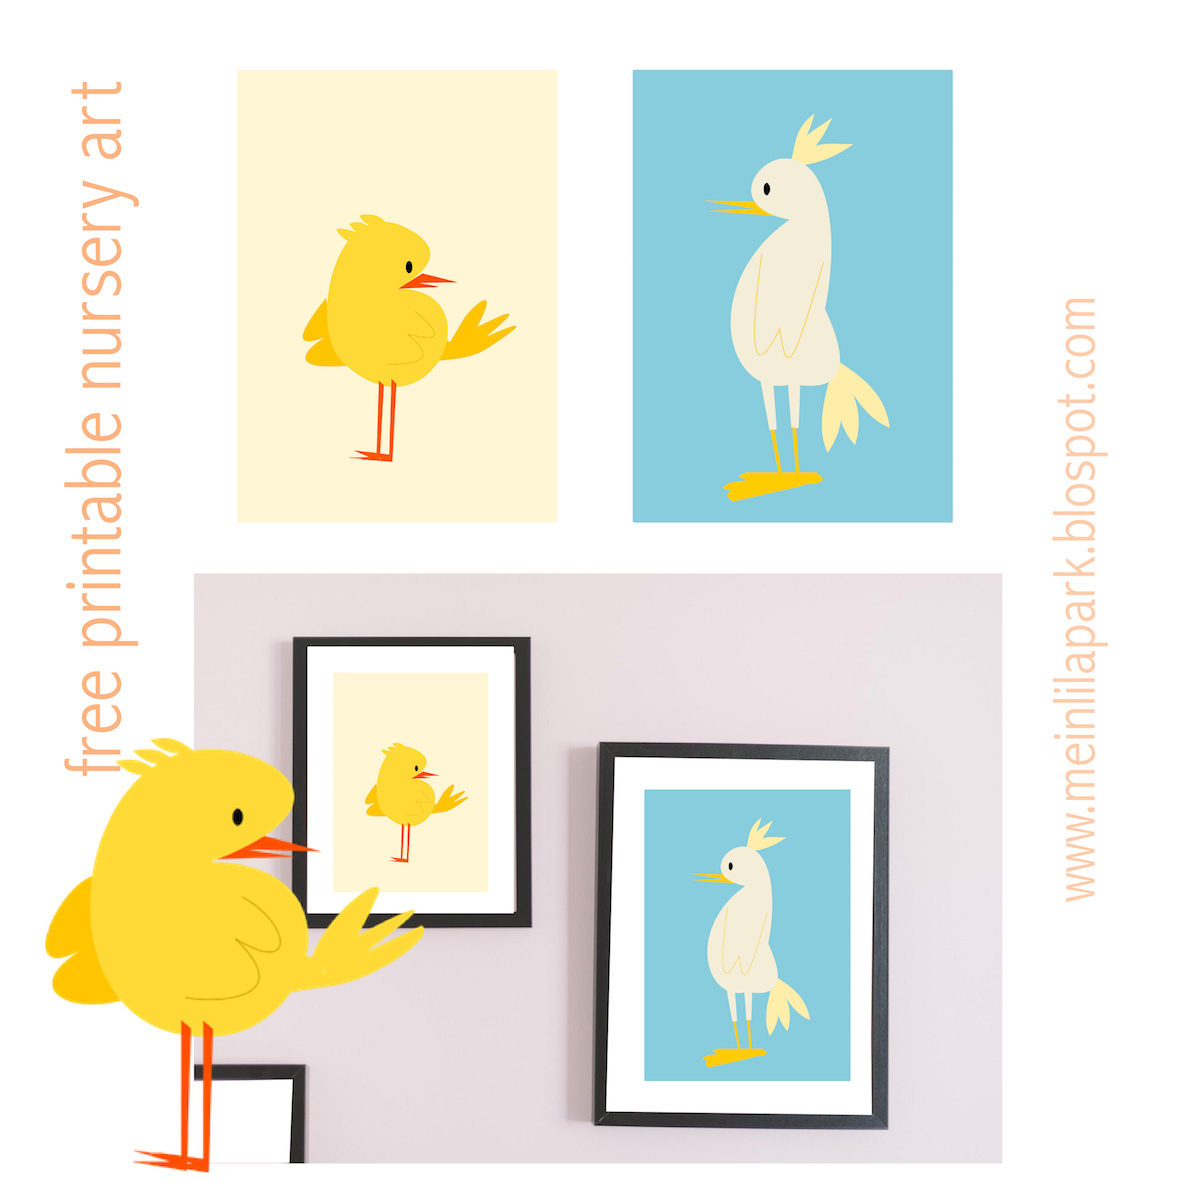 picture about Free Printable Nursery Art titled Totally free printable nursery wall artwork : little one chook